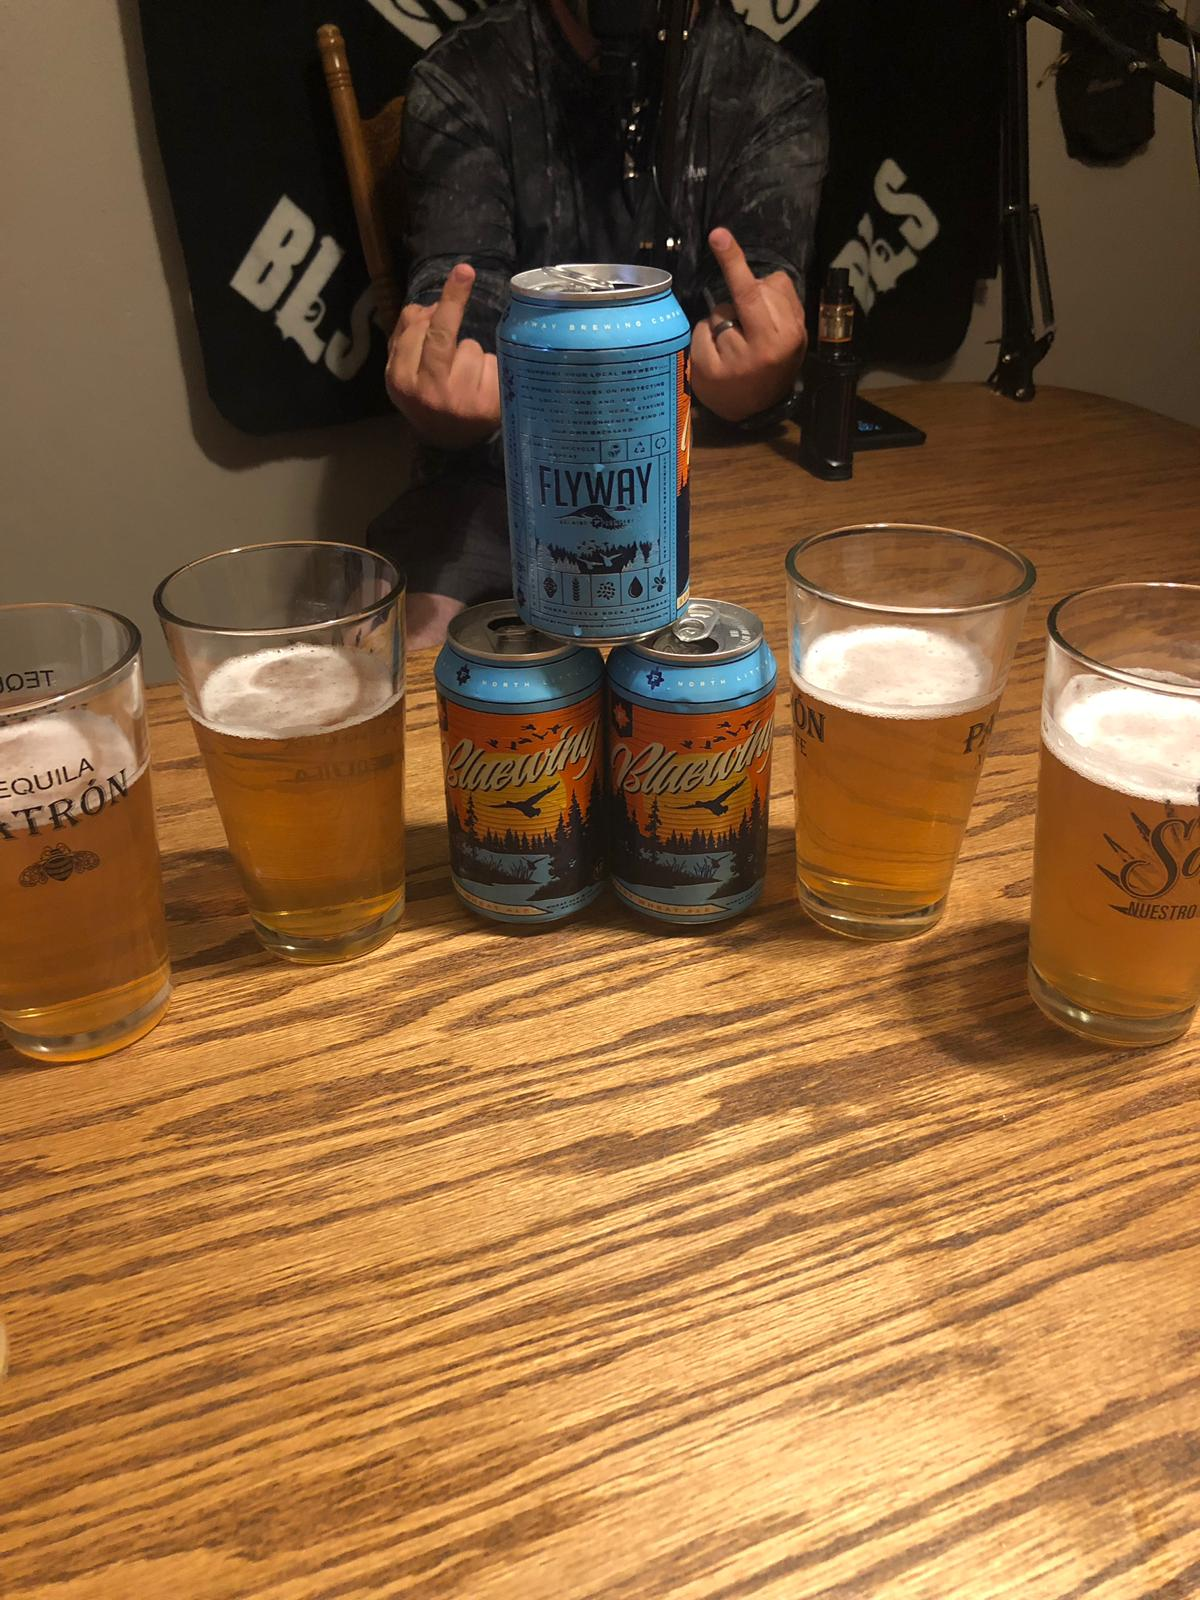 Episode the 61st - Personal Hygiene - Beer review, need to know on personal hygiene, Oklahoma and its weed and 5 civilized Tribes